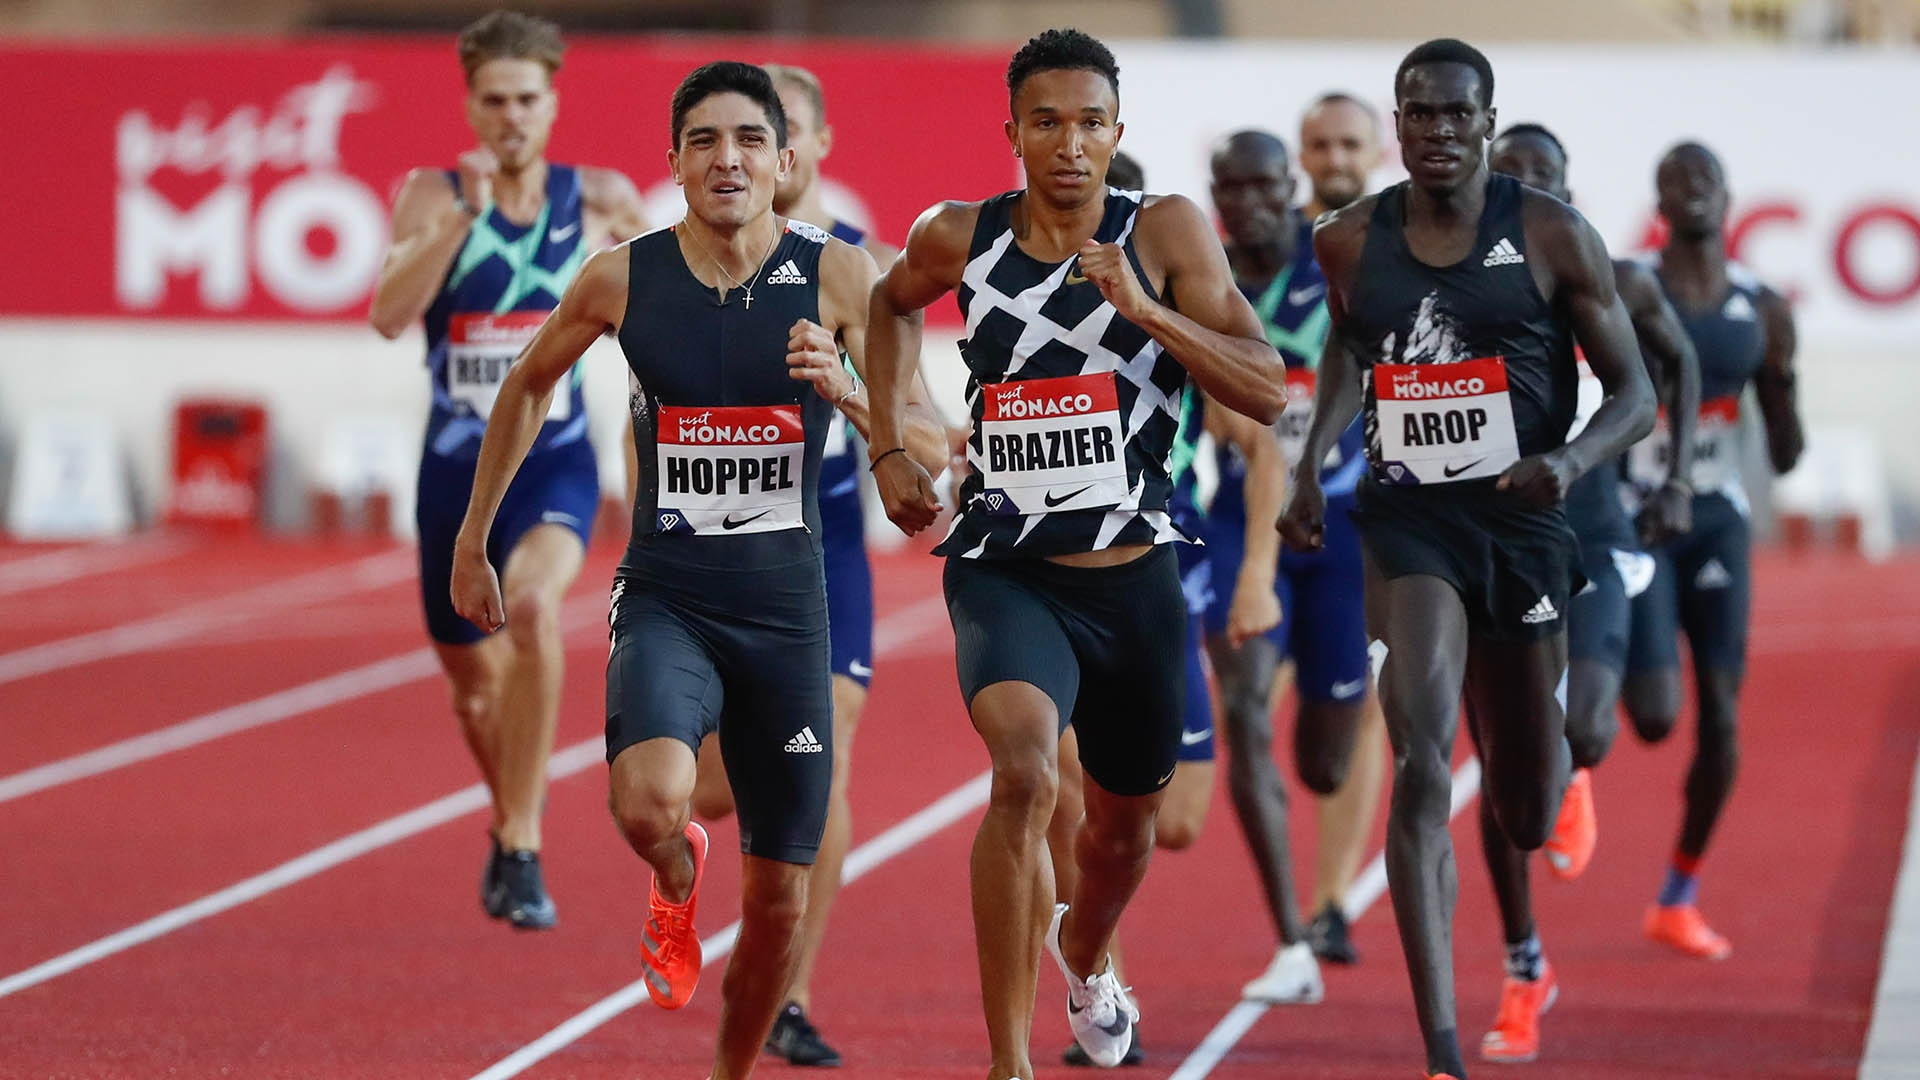 Donavan Brazier and Bryce Hoppel race in the 800m at 2020 Monaco DL